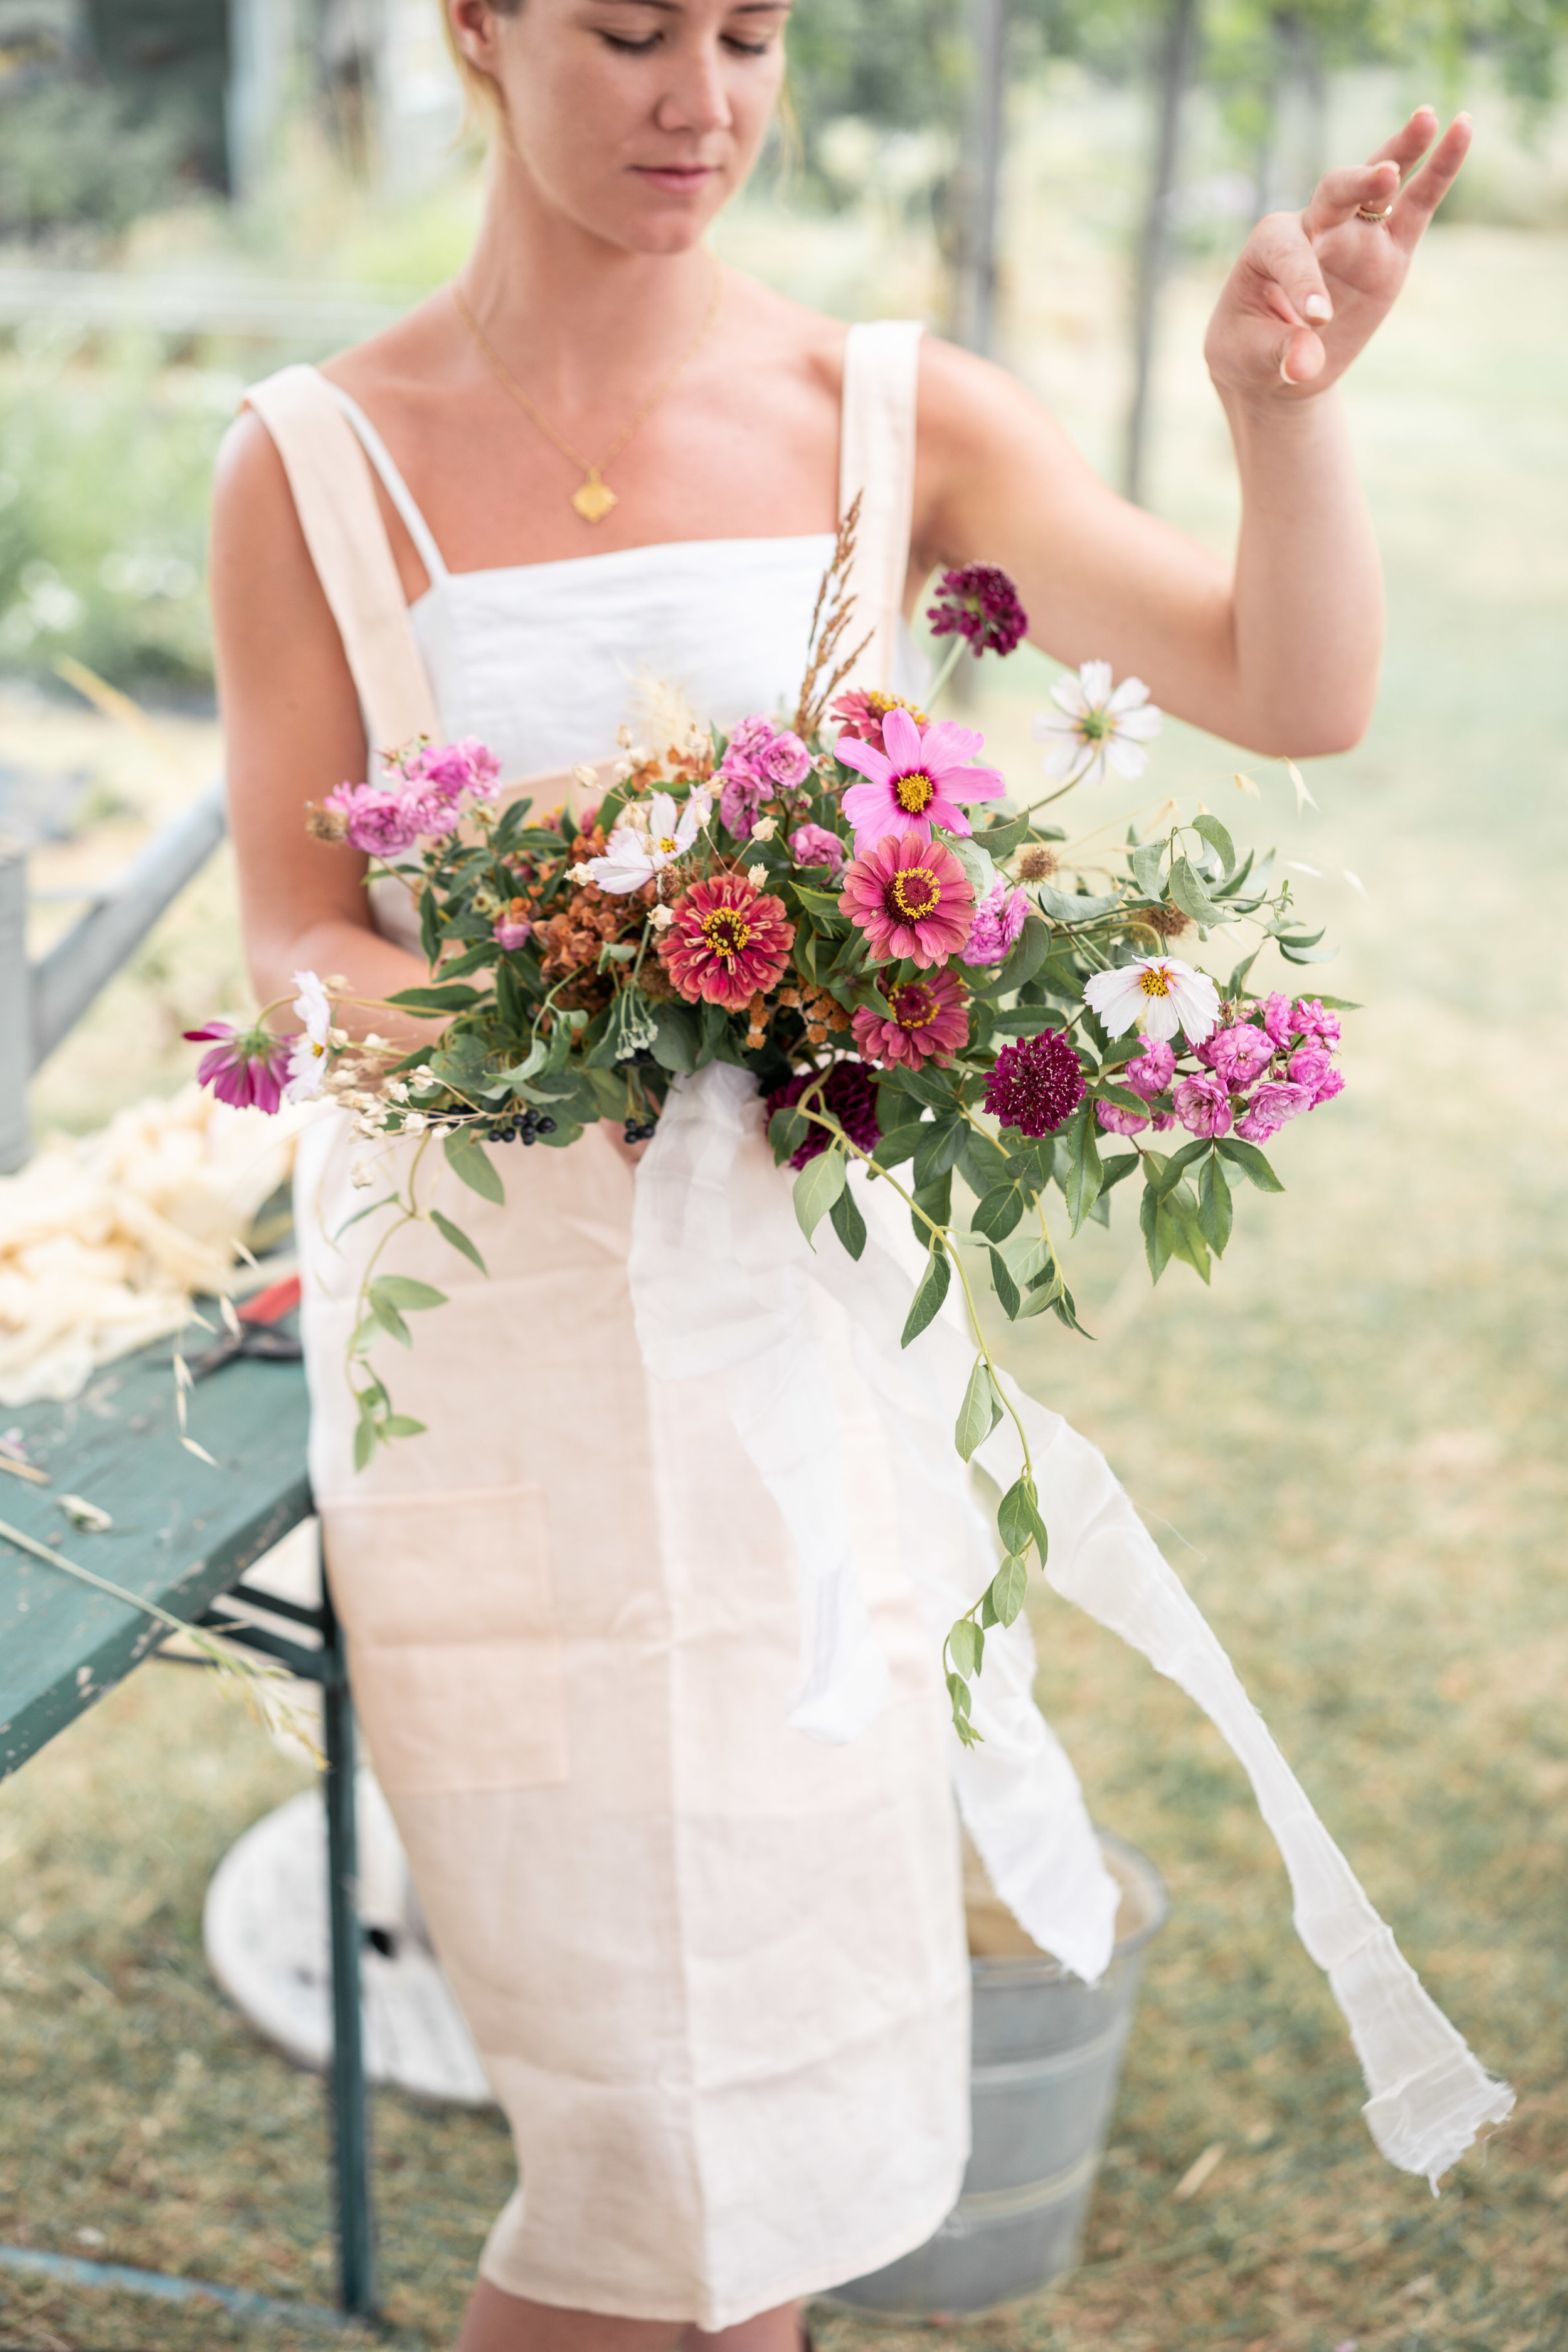 Dahlia, Rose, coneflower, echinacea flower, Puscina flower farm Floristry Workshop Tuscany by Lost In Love Photography